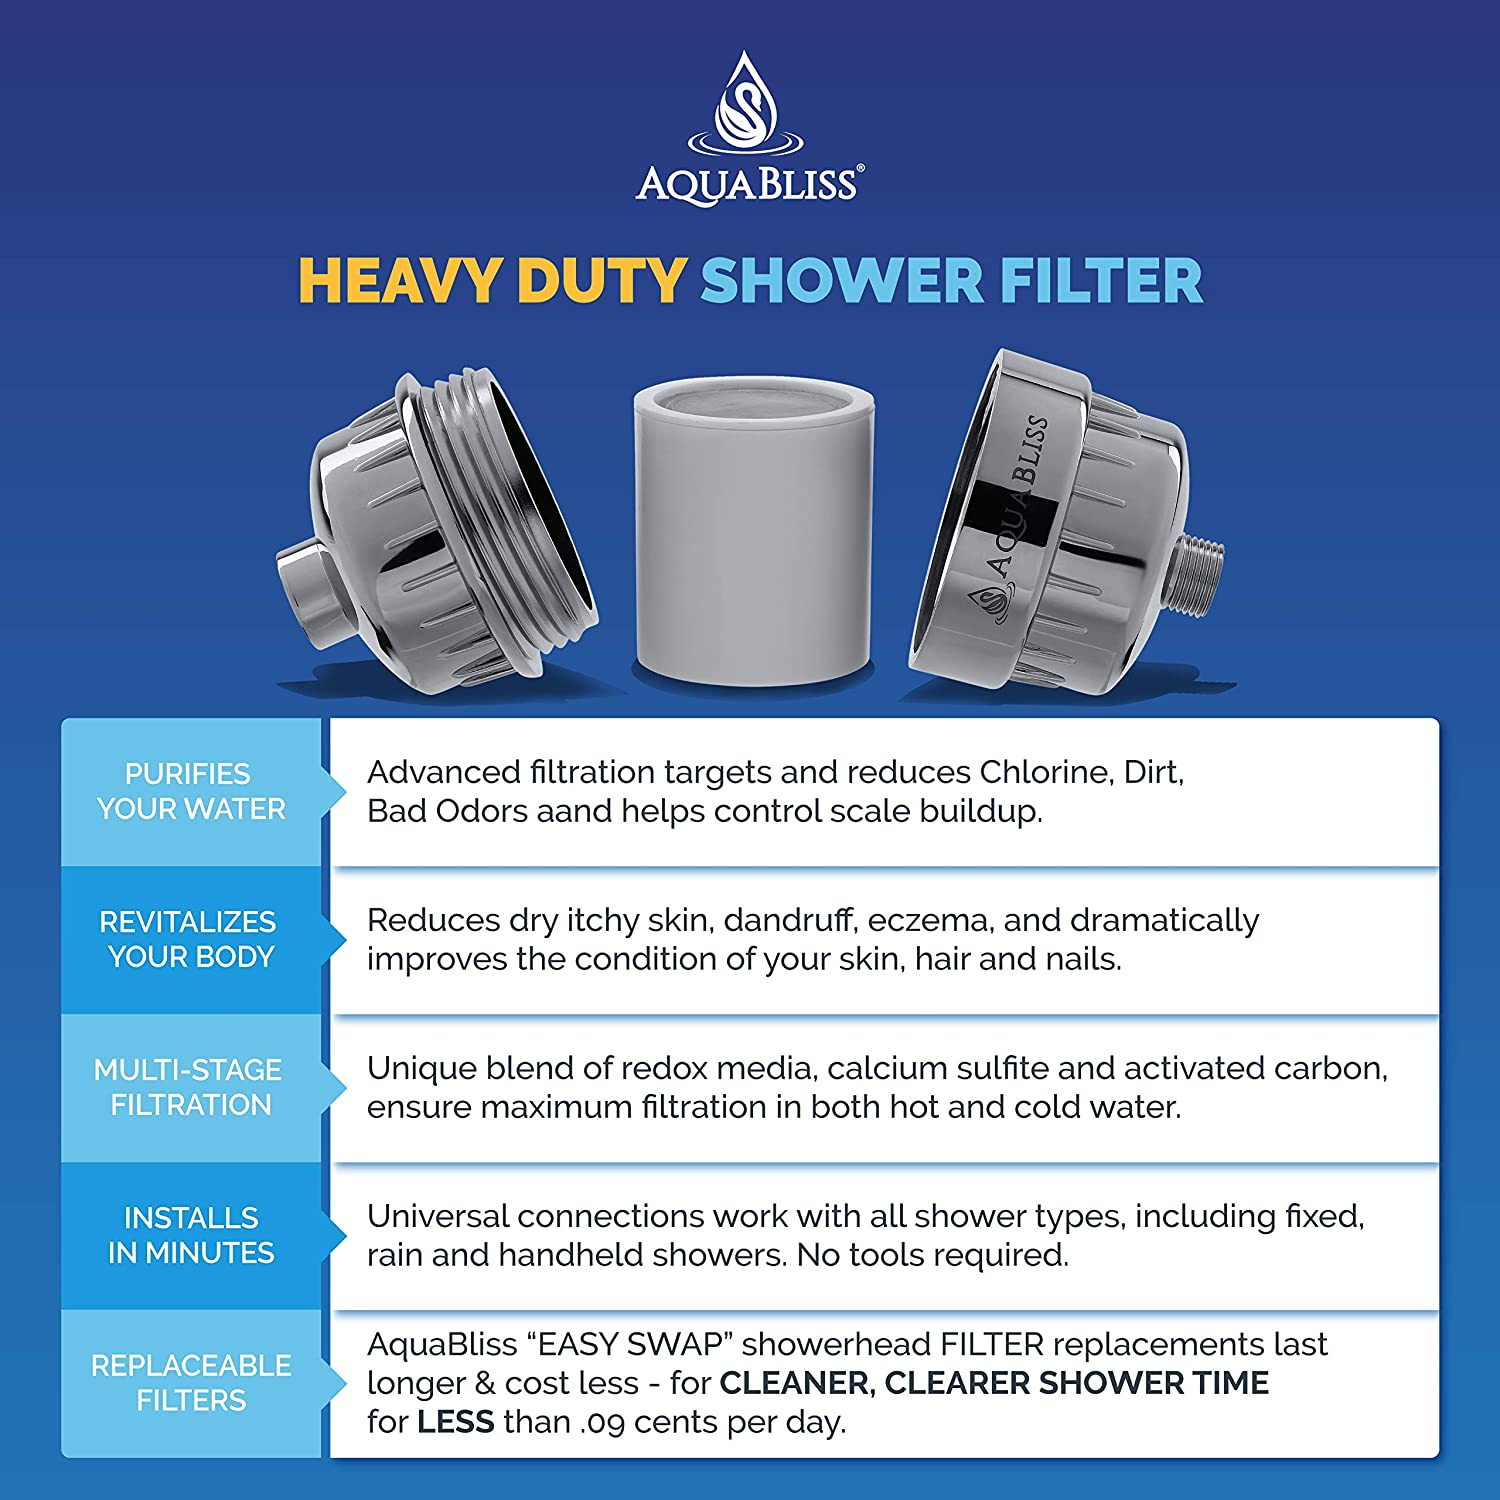 AquaBliss SF220 Shower Filter specs